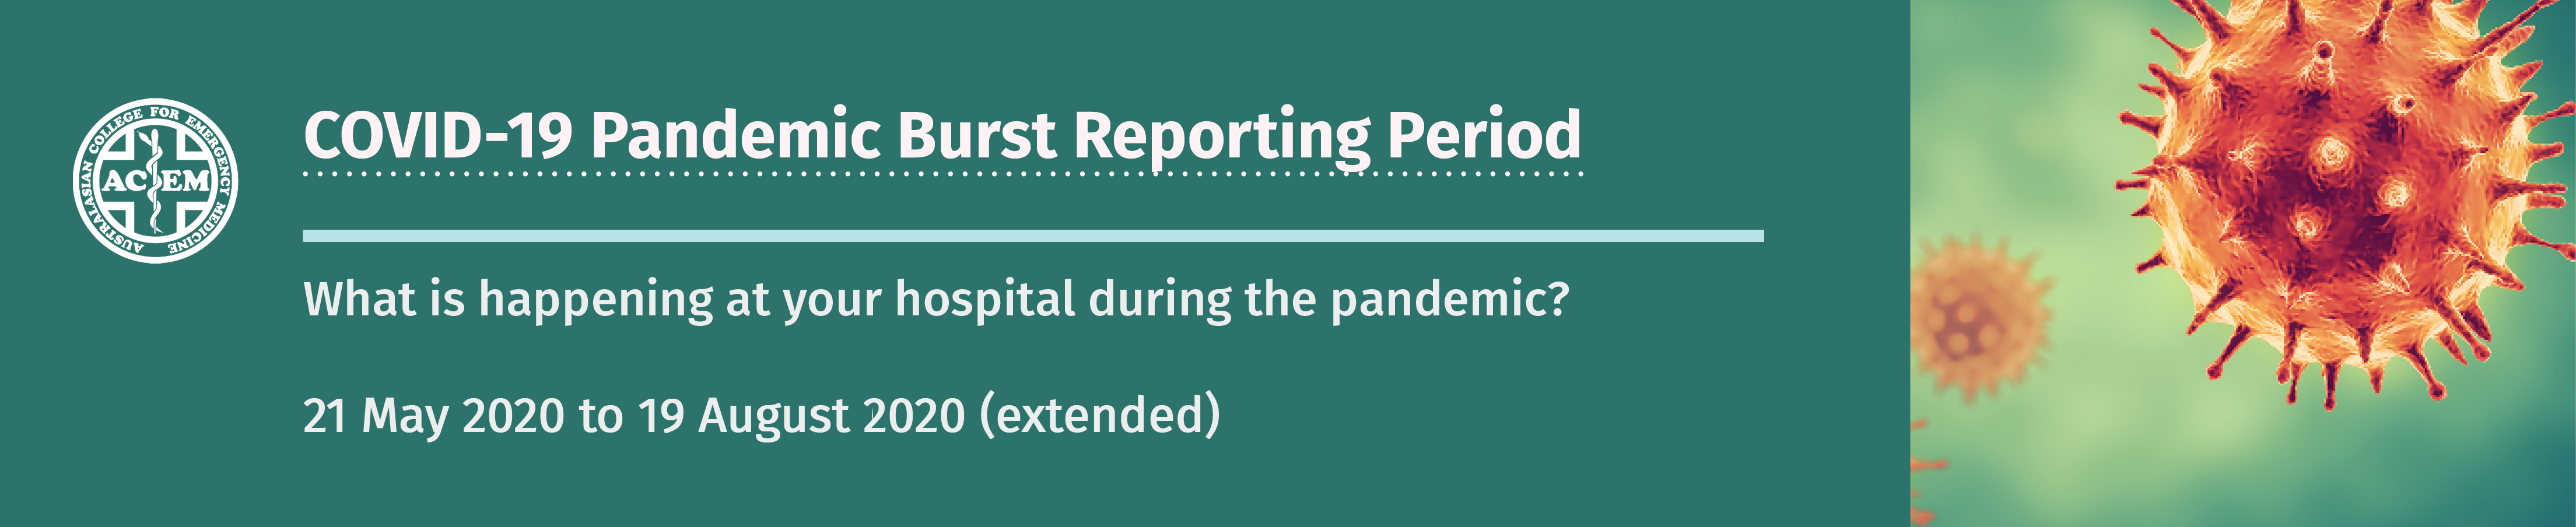 COVID-19 Pandemic Burst Reporting Period: What is happening in your hospital during the pandemic? 21 May 2020 to 19 August 2020 (extended)